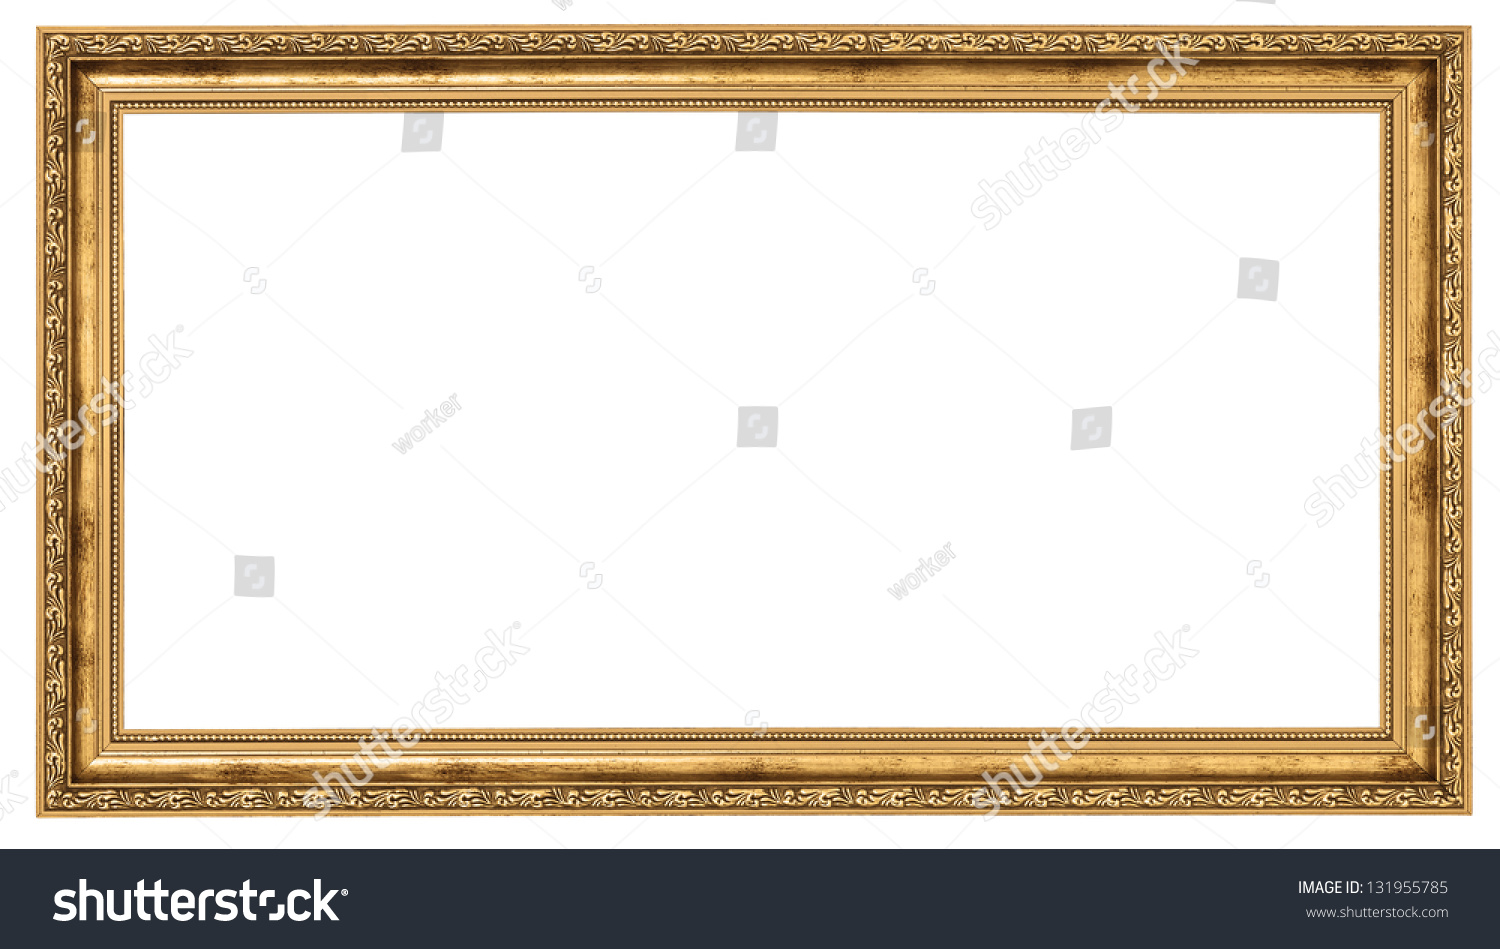 Marvelous Extremely Long Golden Frame Isolated On White Background